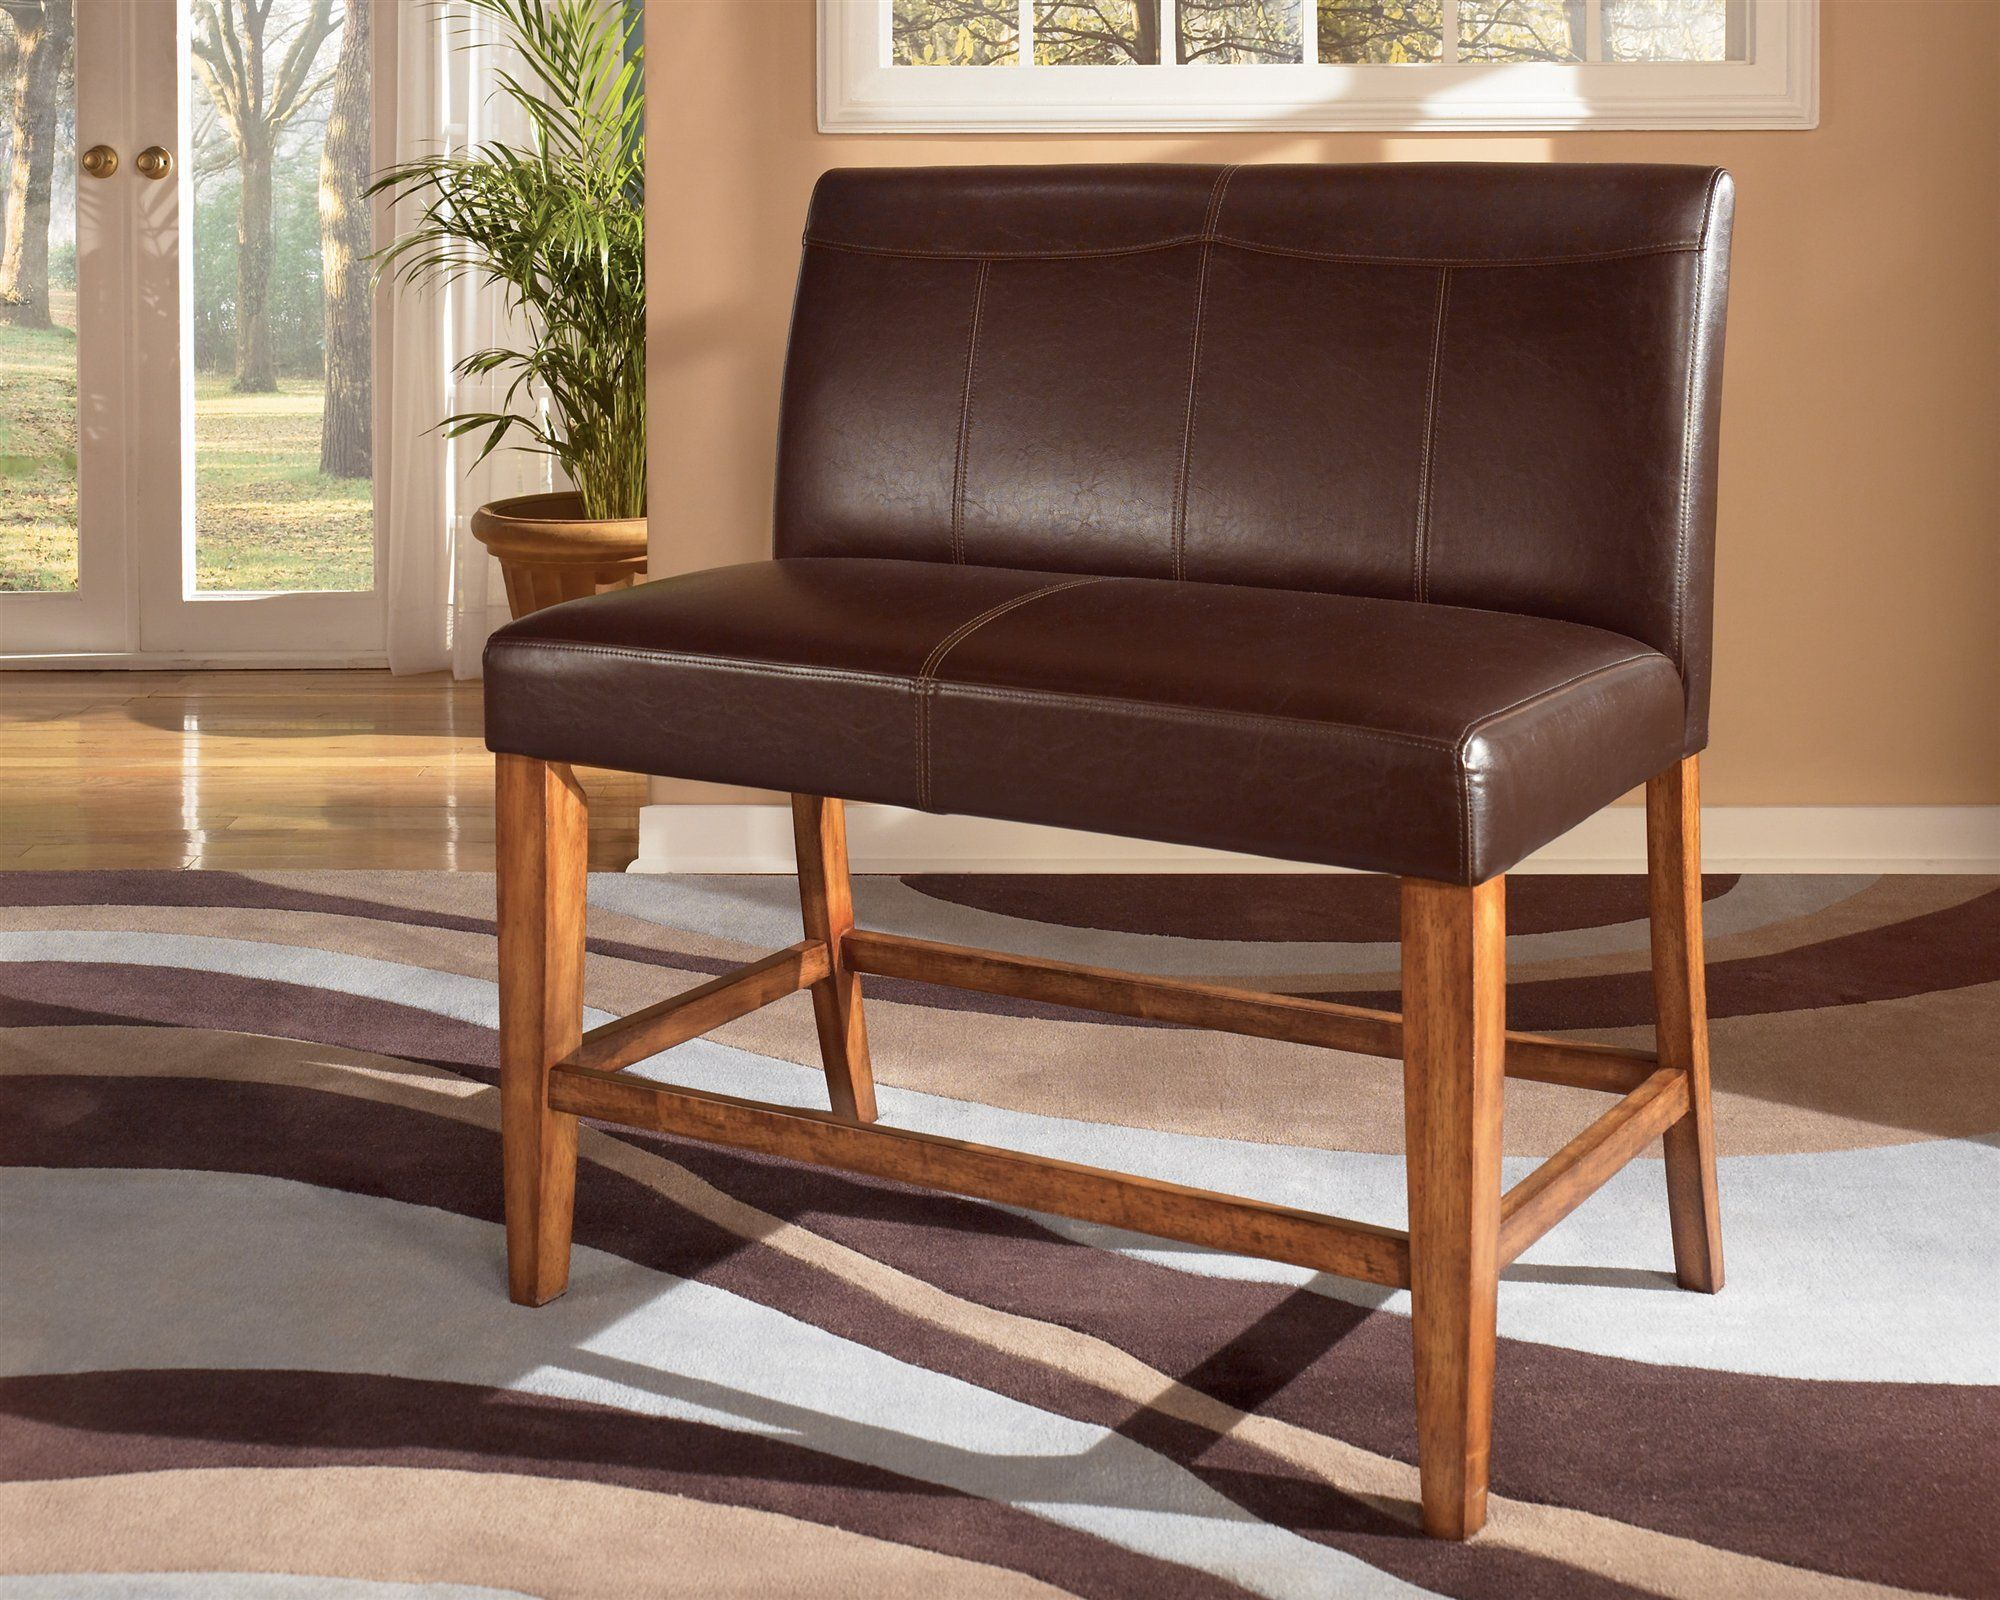 Leather Dual Seat Counter Bench For The Home Wood